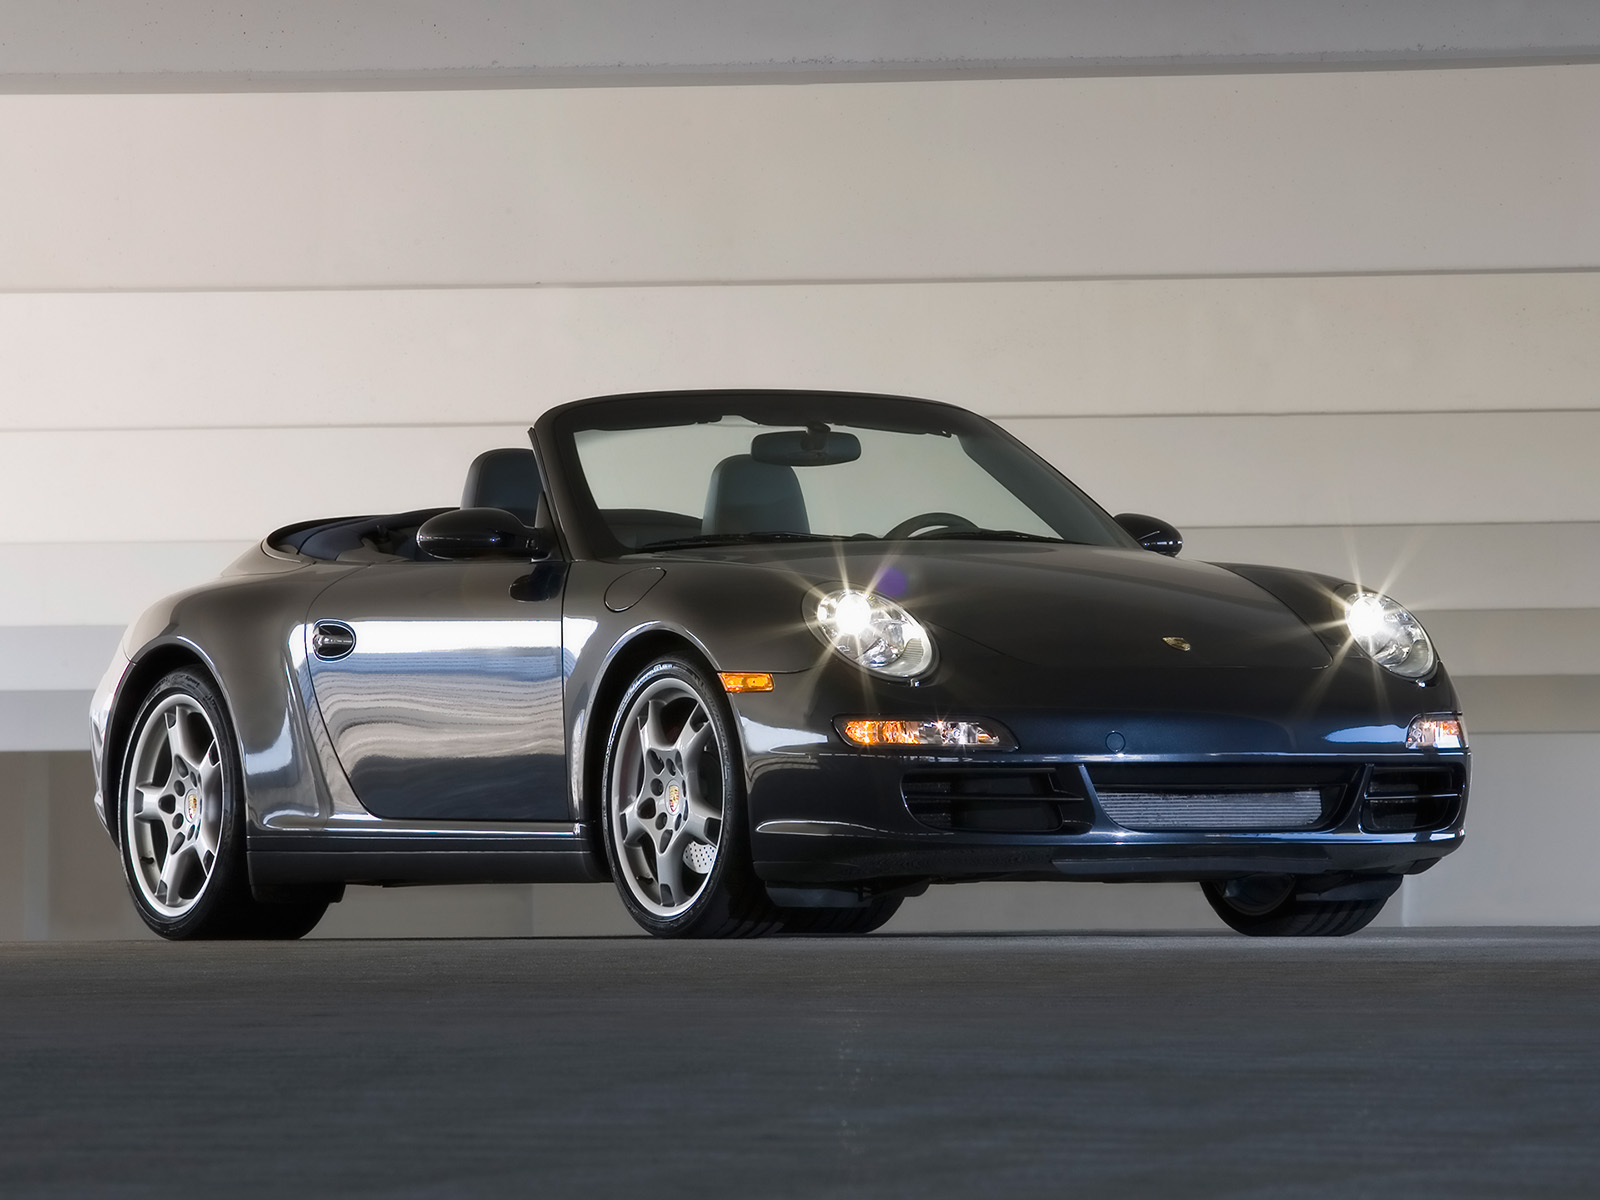 Porsche 911 Carrera 4S Cabriolet photo 43921